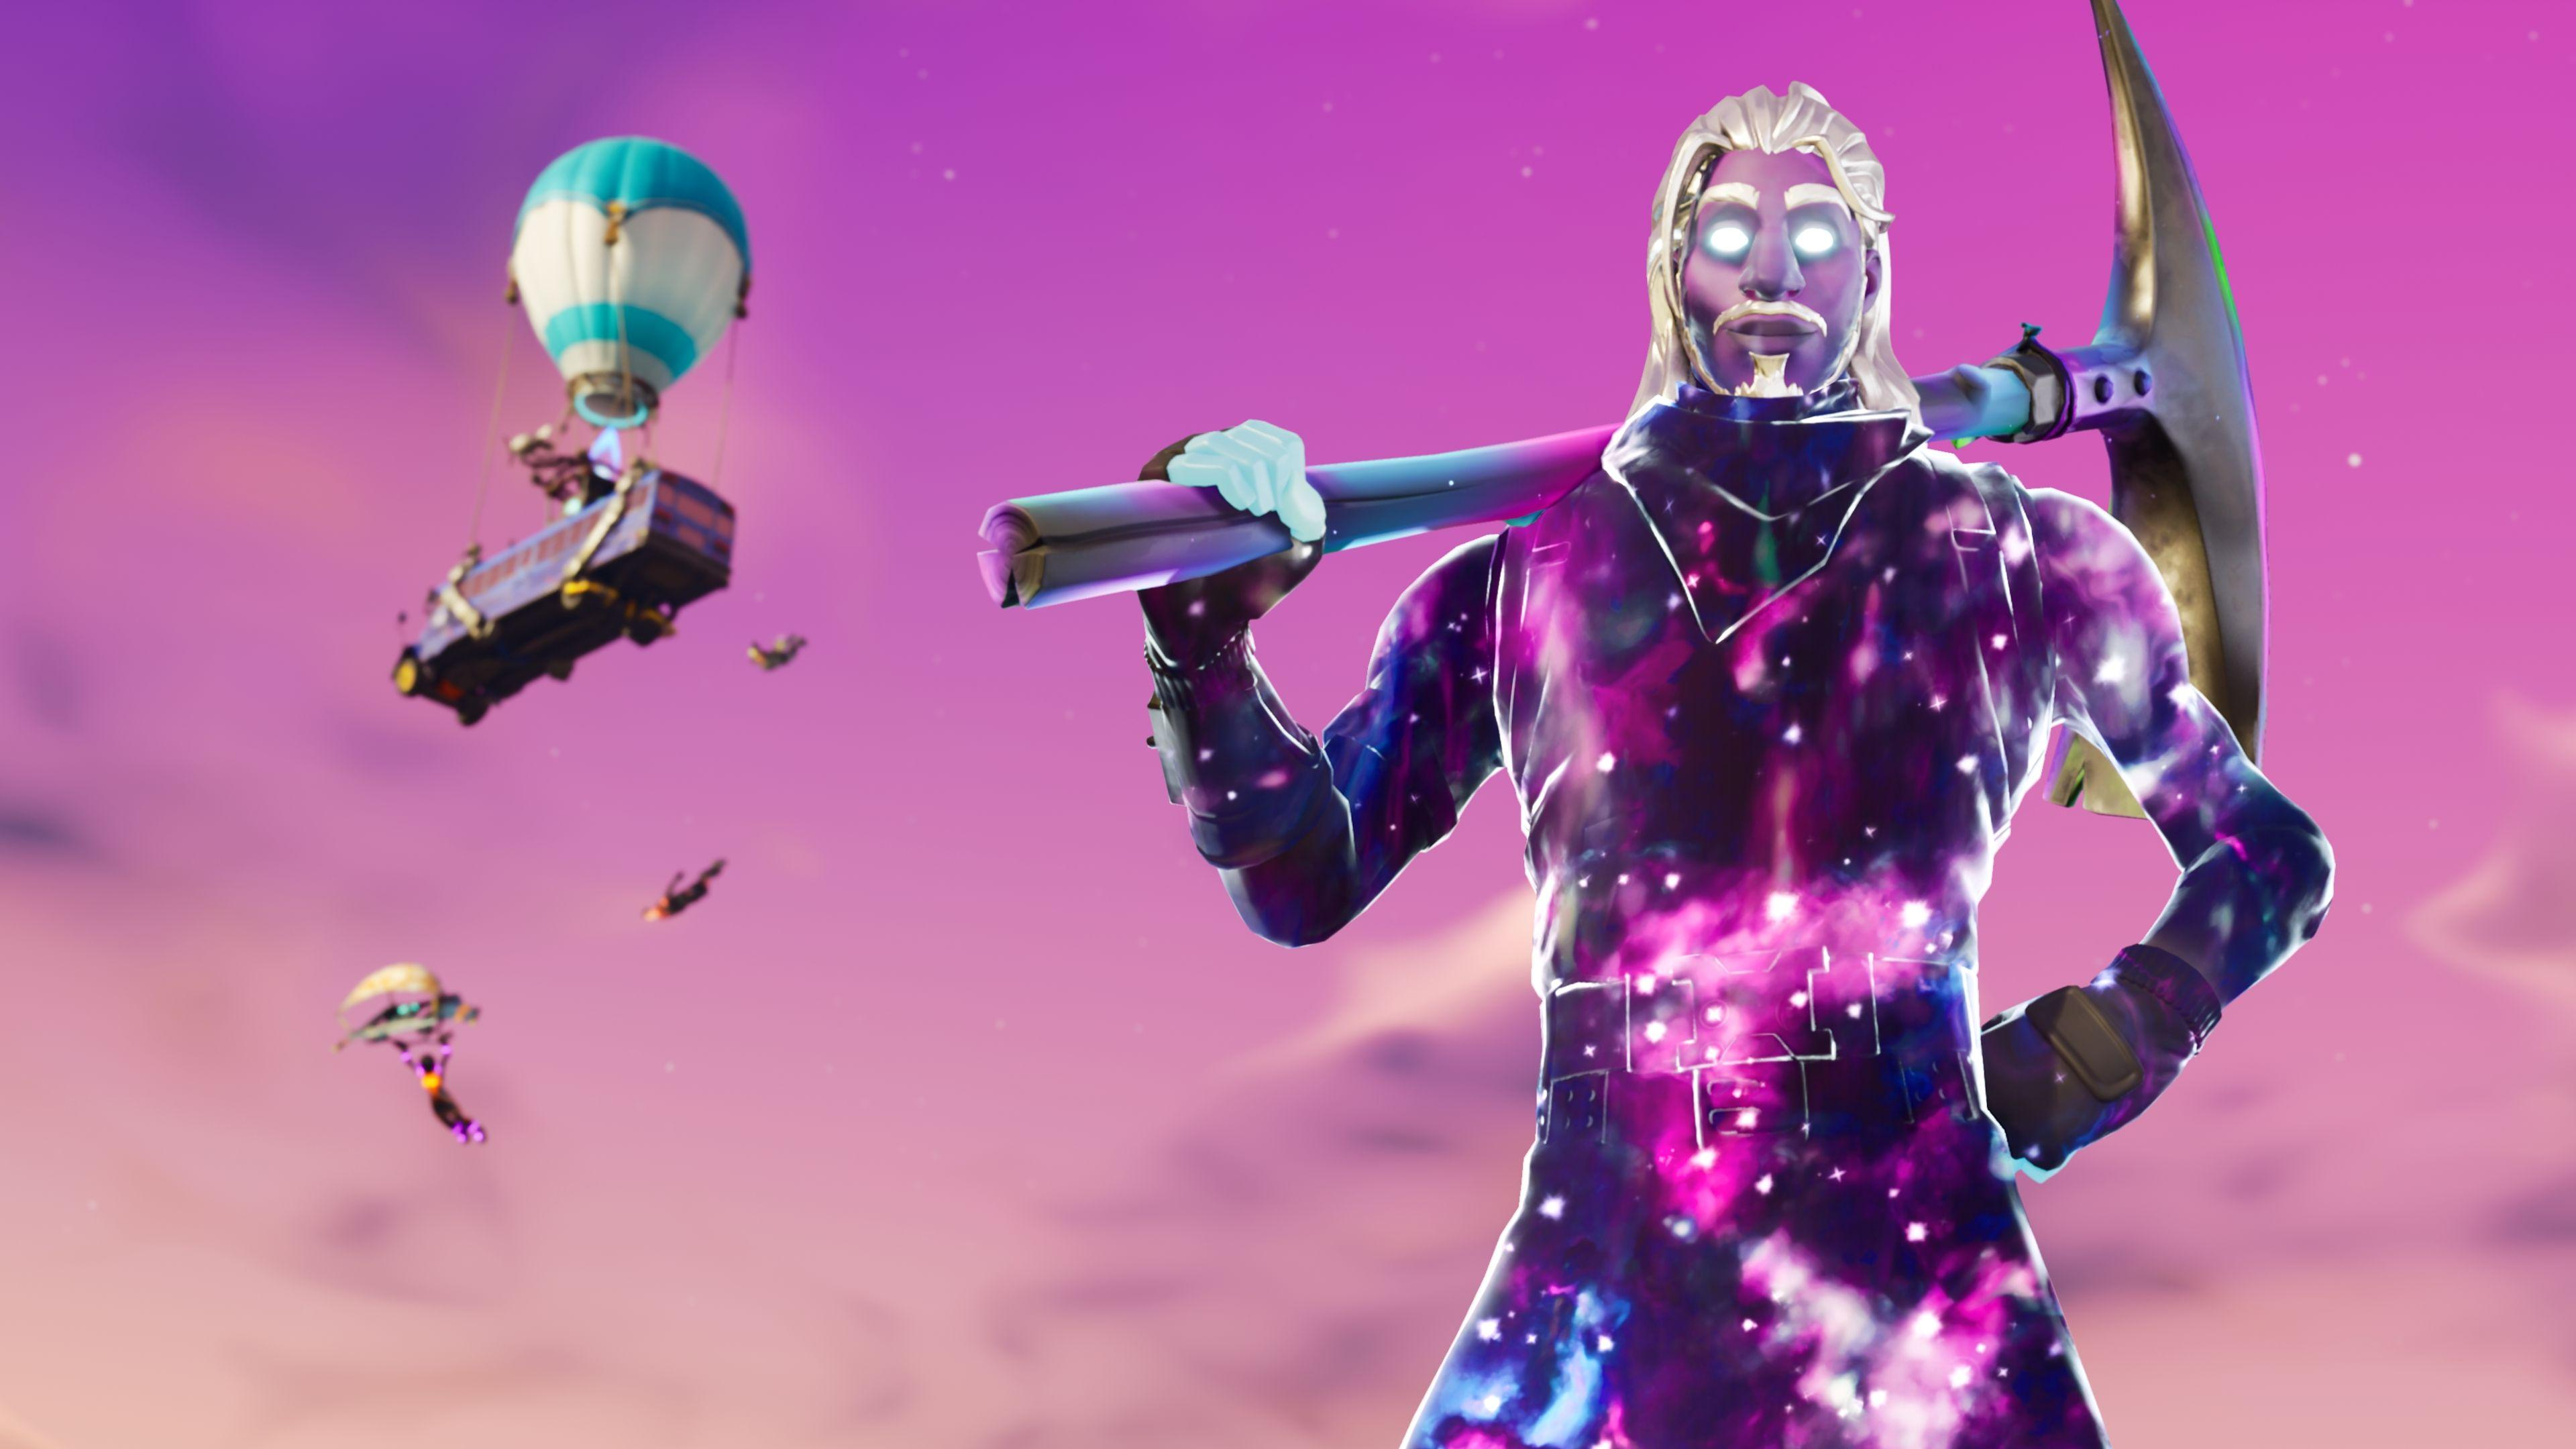 Galaxy Man Fortnite Season 6 4K Wallpapers